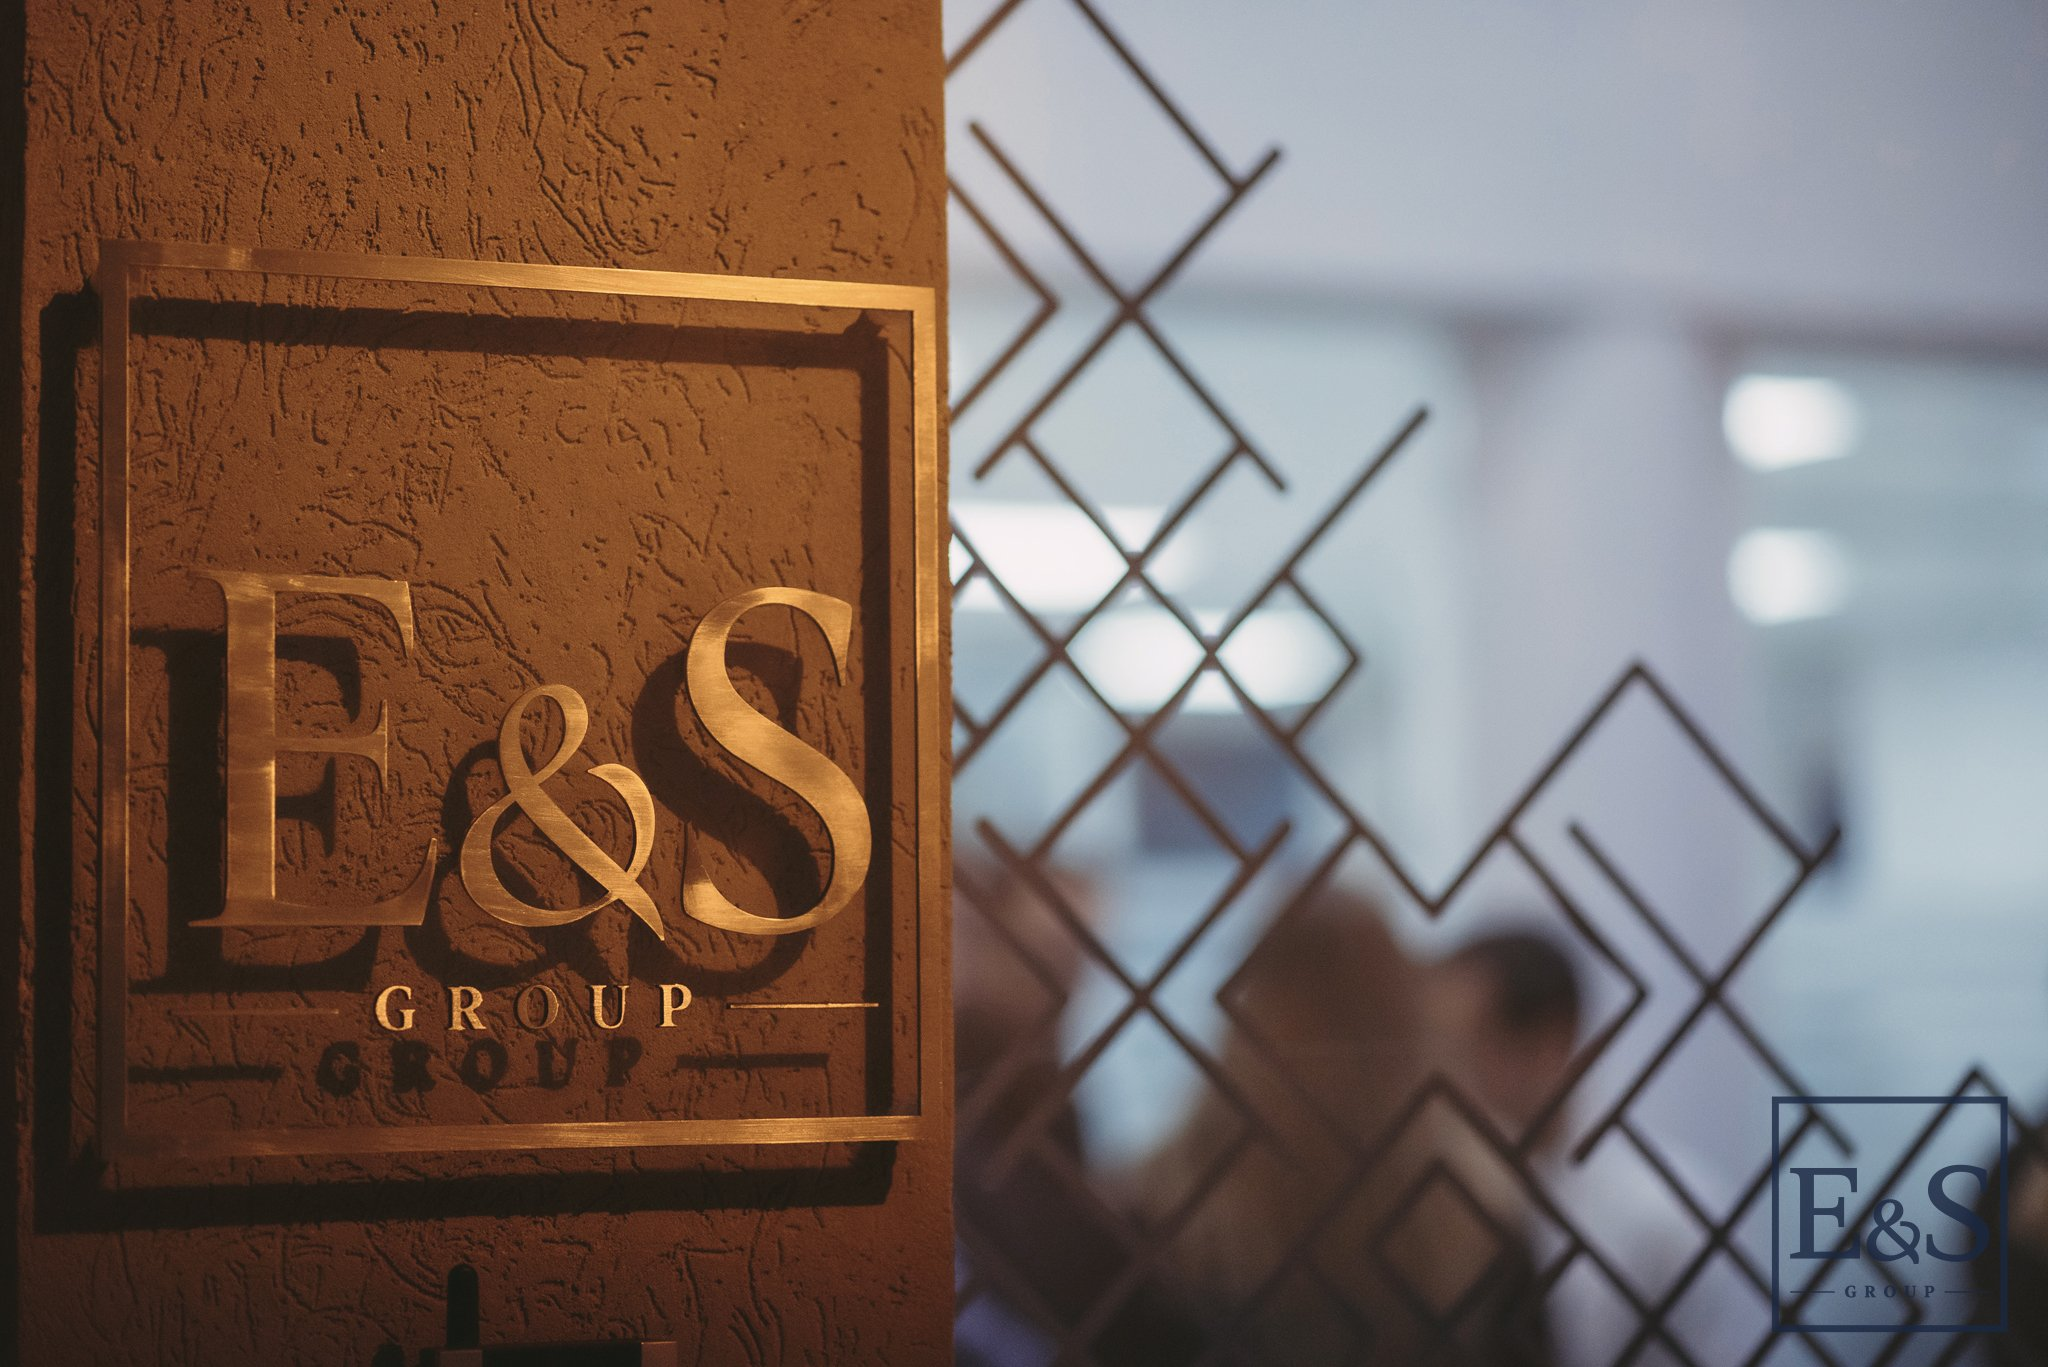 Statement by E&S Group